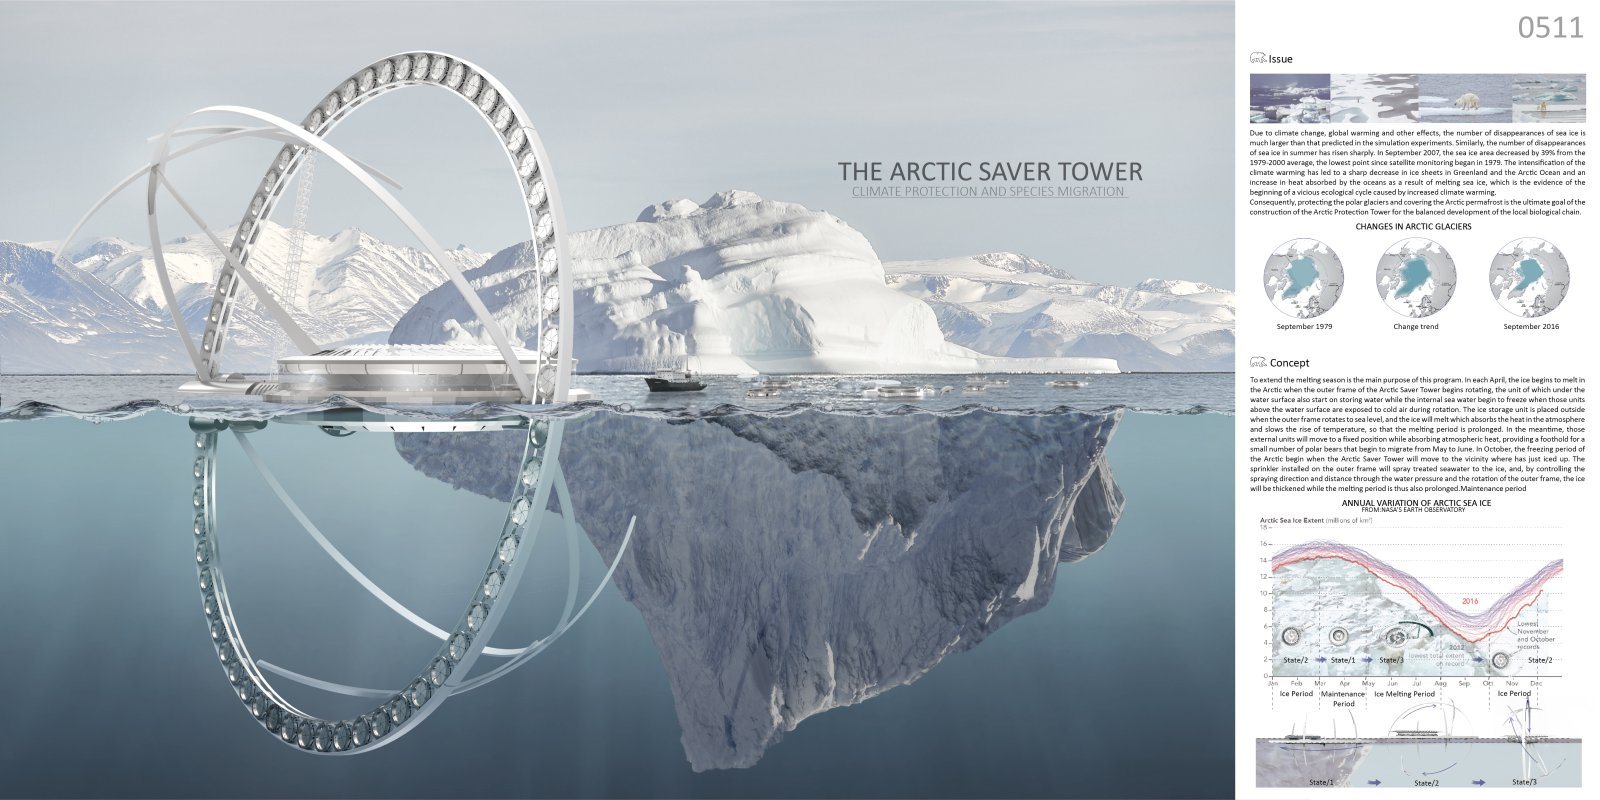 Arctic Saver Tower